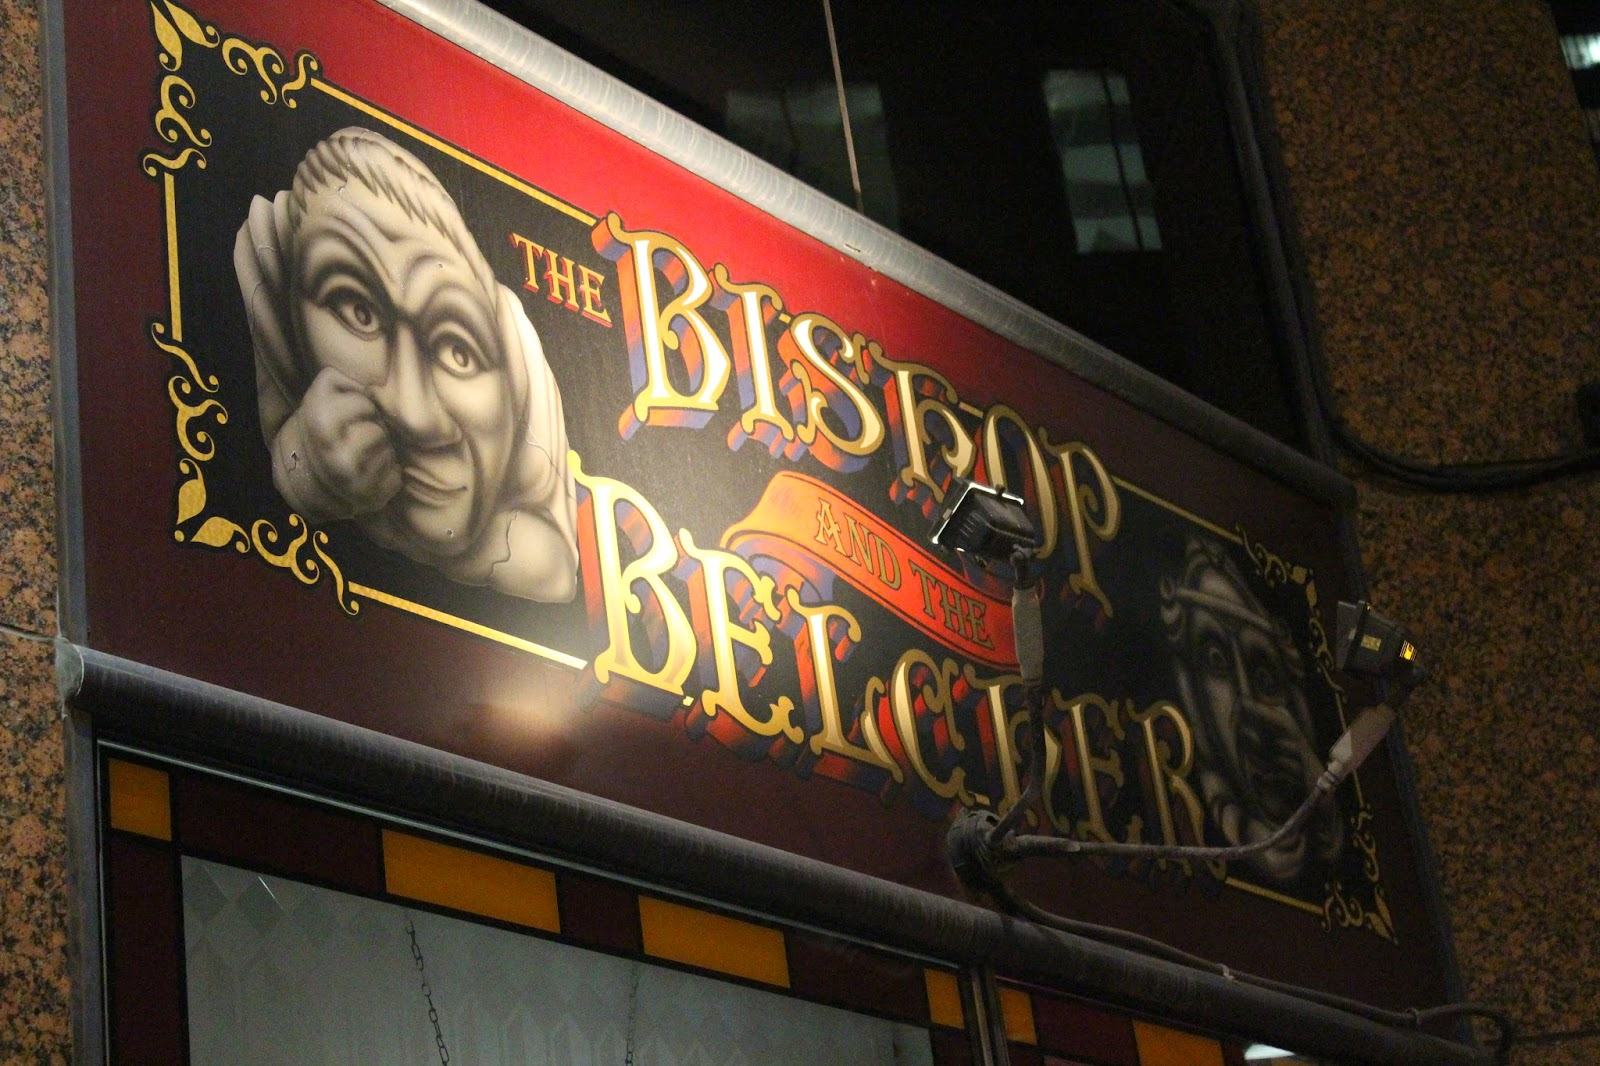 The Bishop & The Belcher: Un pub irlandais à visiter!